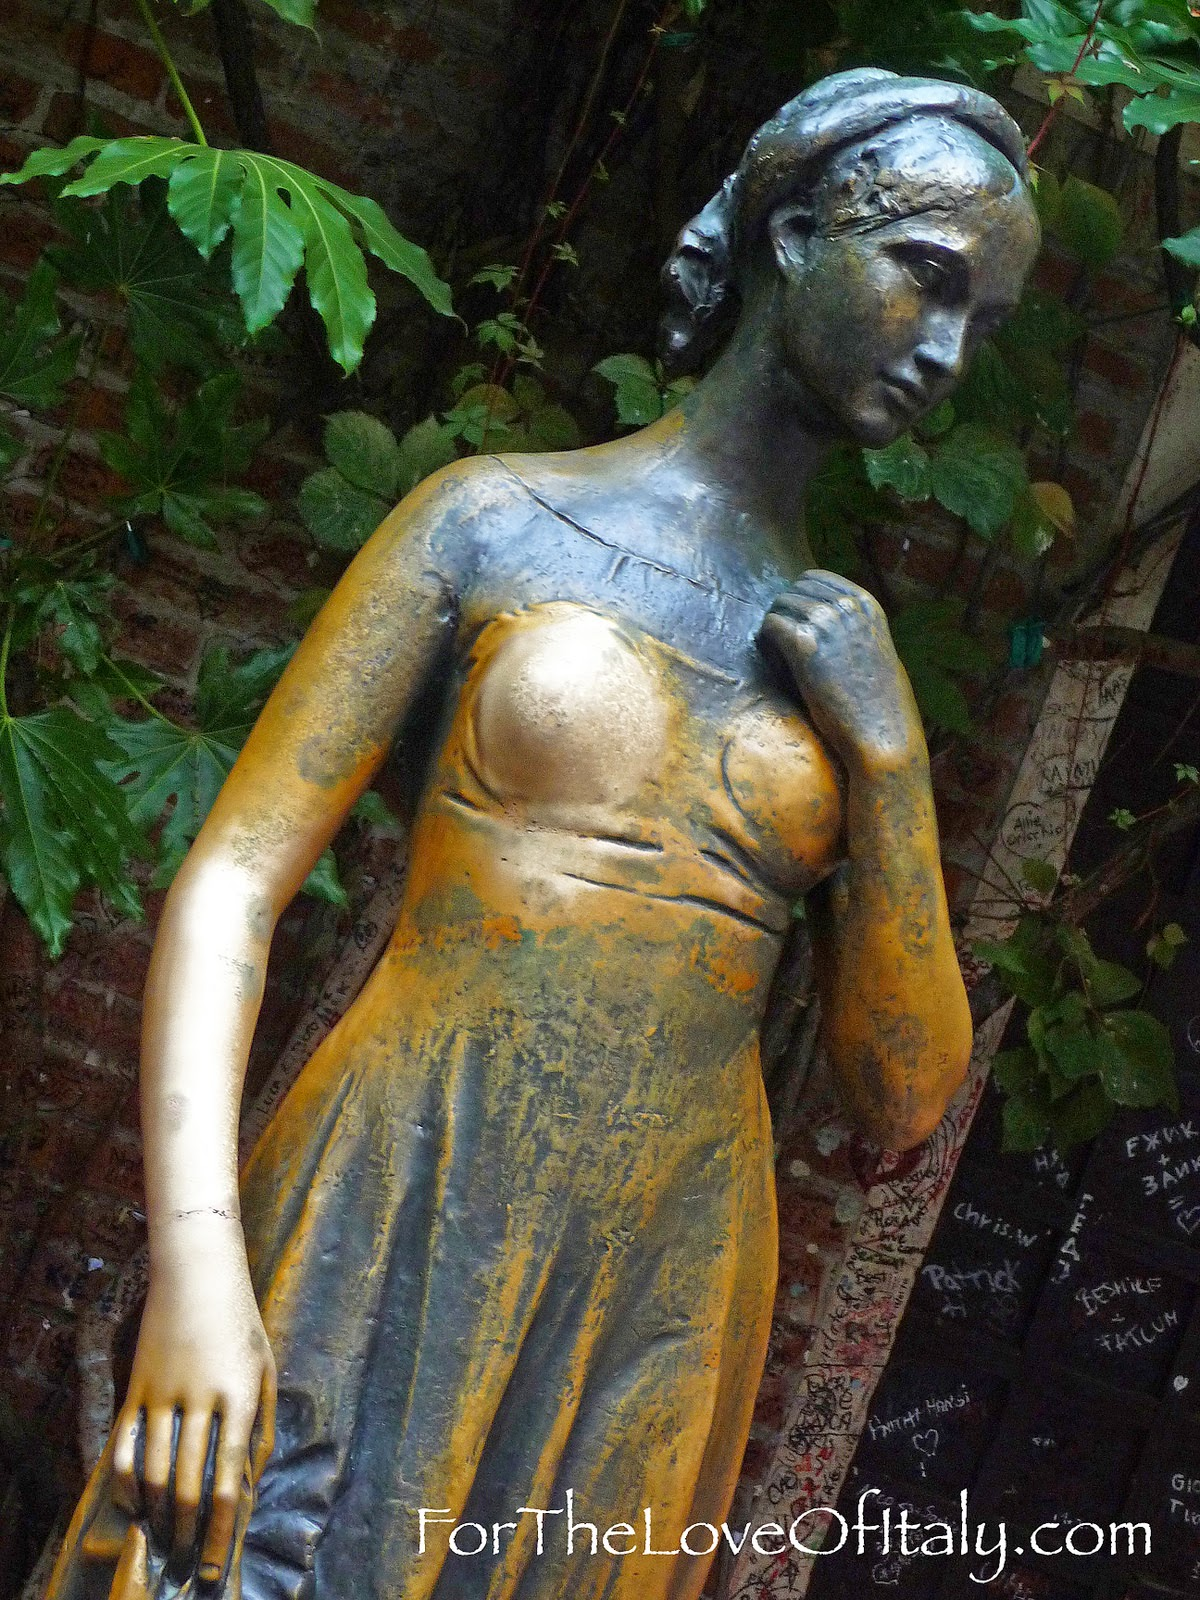 The Bronze Statue Of Juliet In Verona, Italy